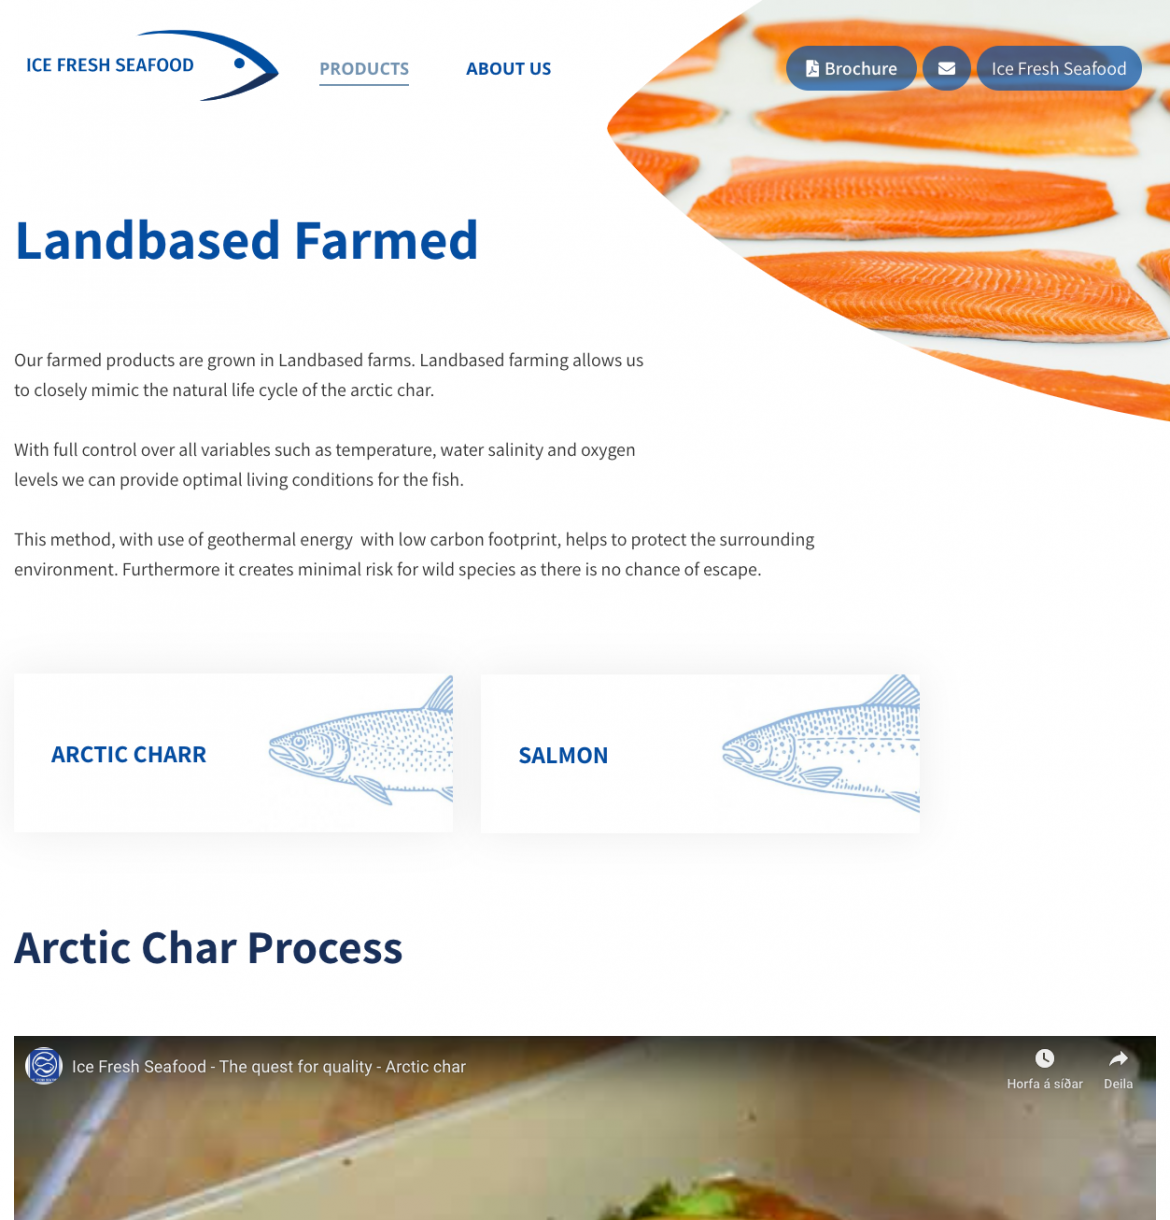 landbased-farmed-ice-fresh-seafood-wwwicefreshis.png